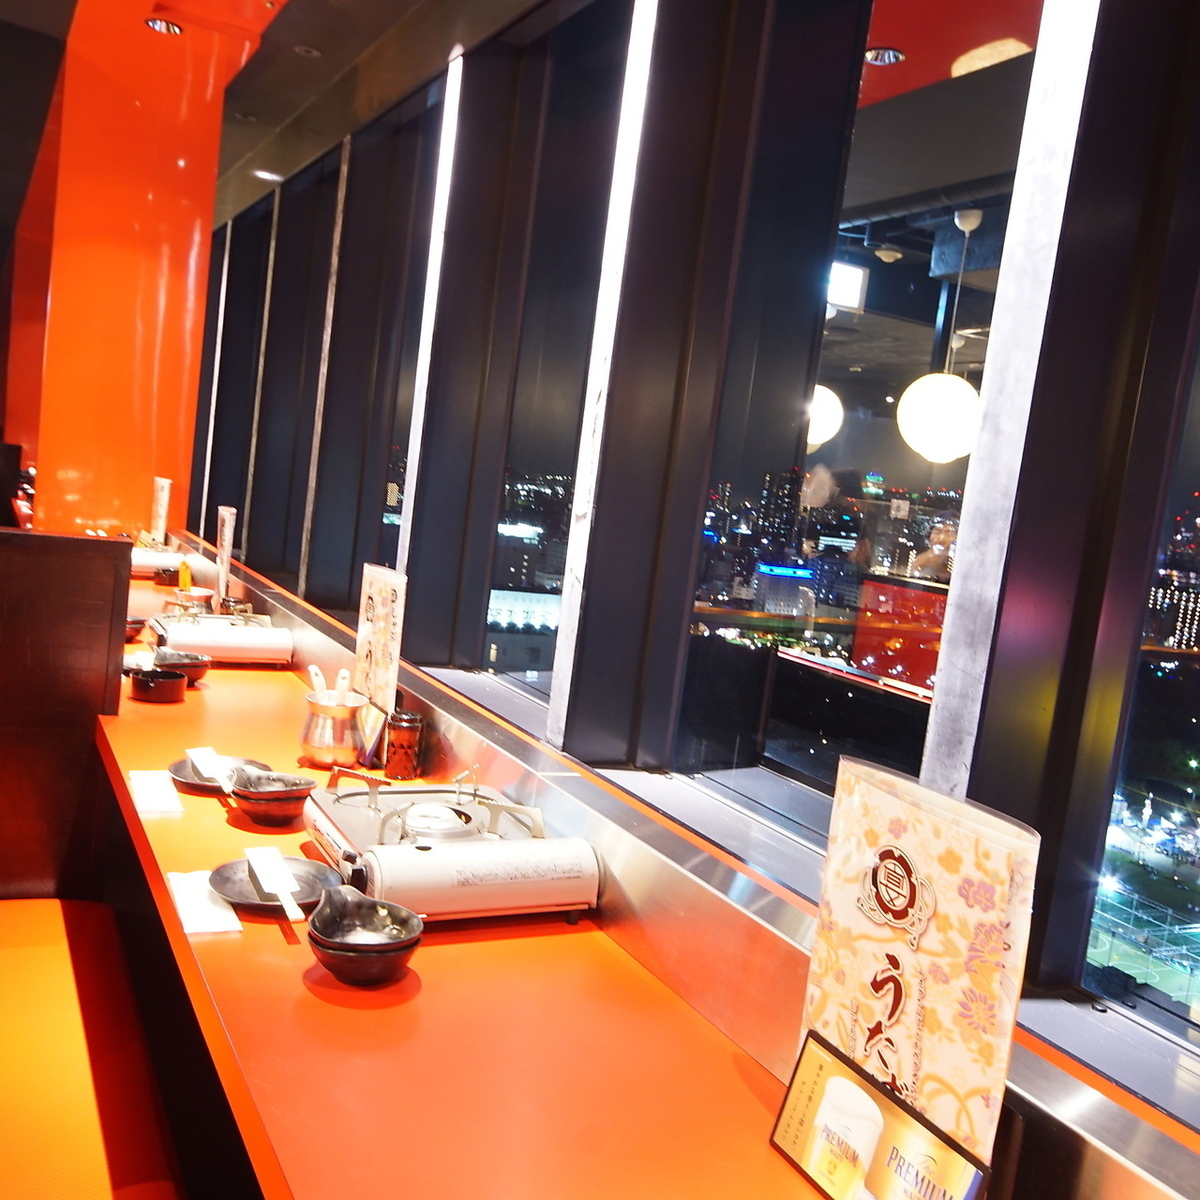 There is a paired seat of sparkling night view in front of you!